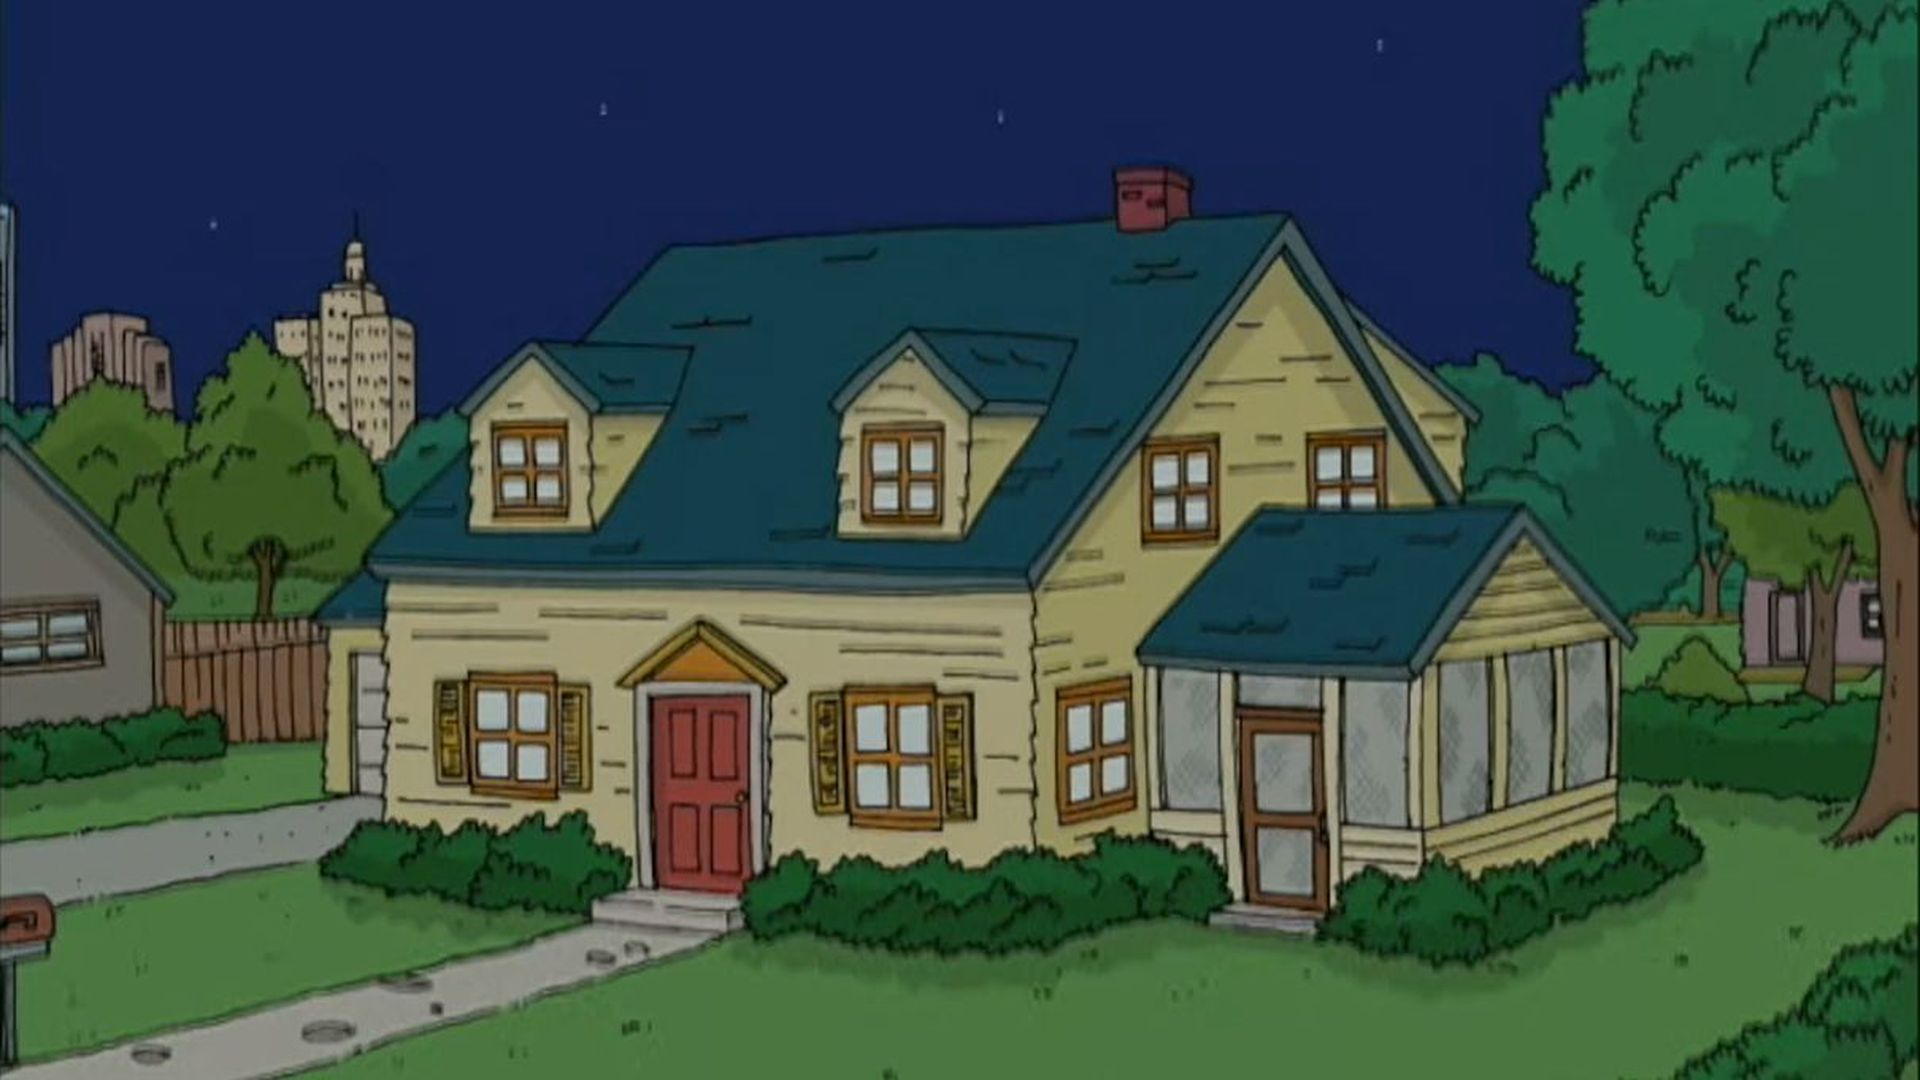 We Ll Show You A Cartoon House You Tell Us What Character Lives In It Howstuffworks